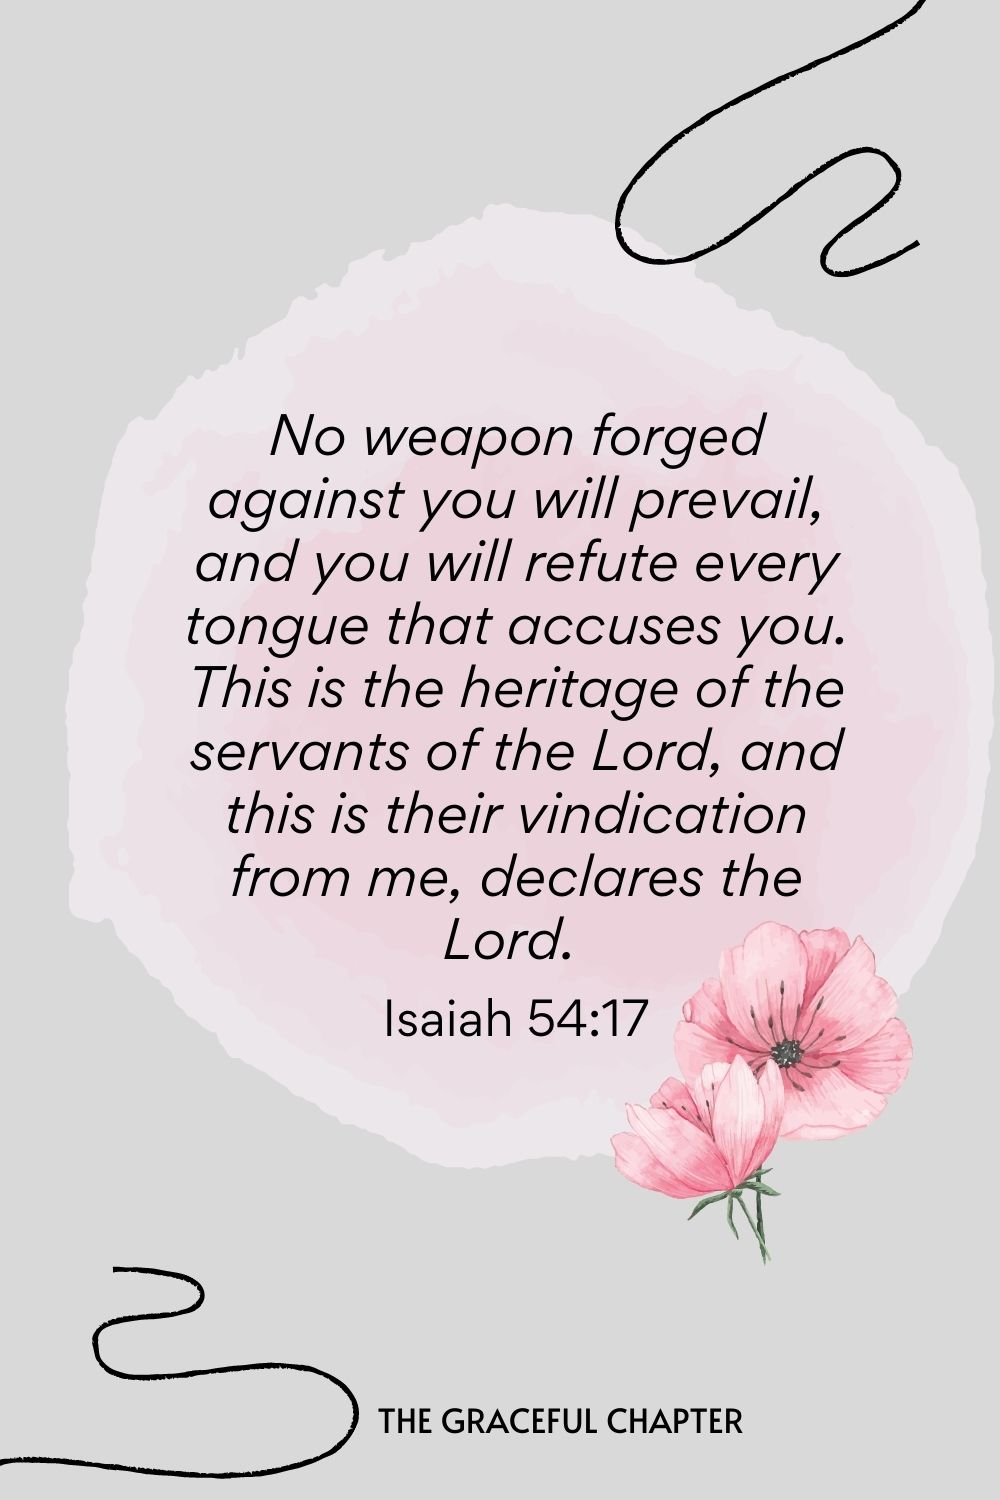 Bible verses to pray against bad dreams - No weapon forged against you will prevail, and you will refute every tongue that accuses you. This is the heritage of the servants of the Lord, and this is their vindication from me, declares the Lord.  Isaiah 54:17